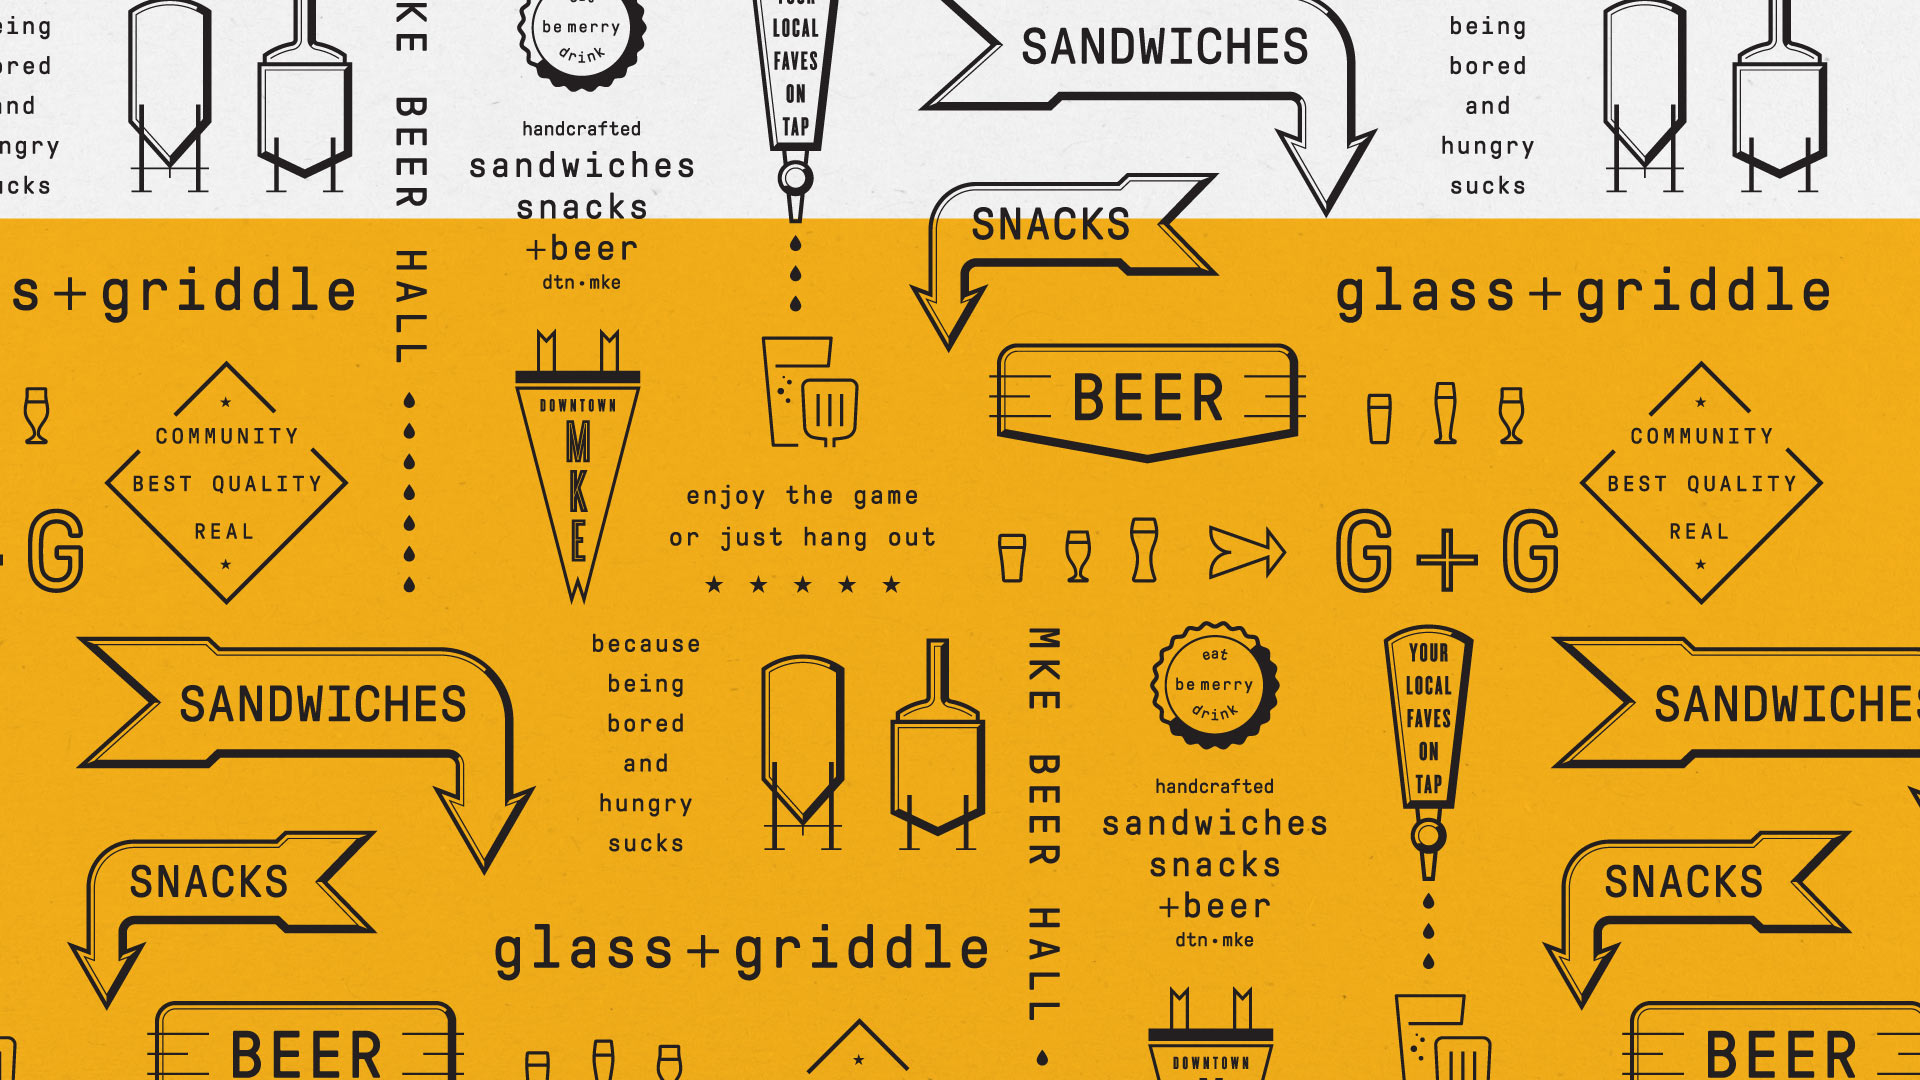 glass-griddle-brand-pattern